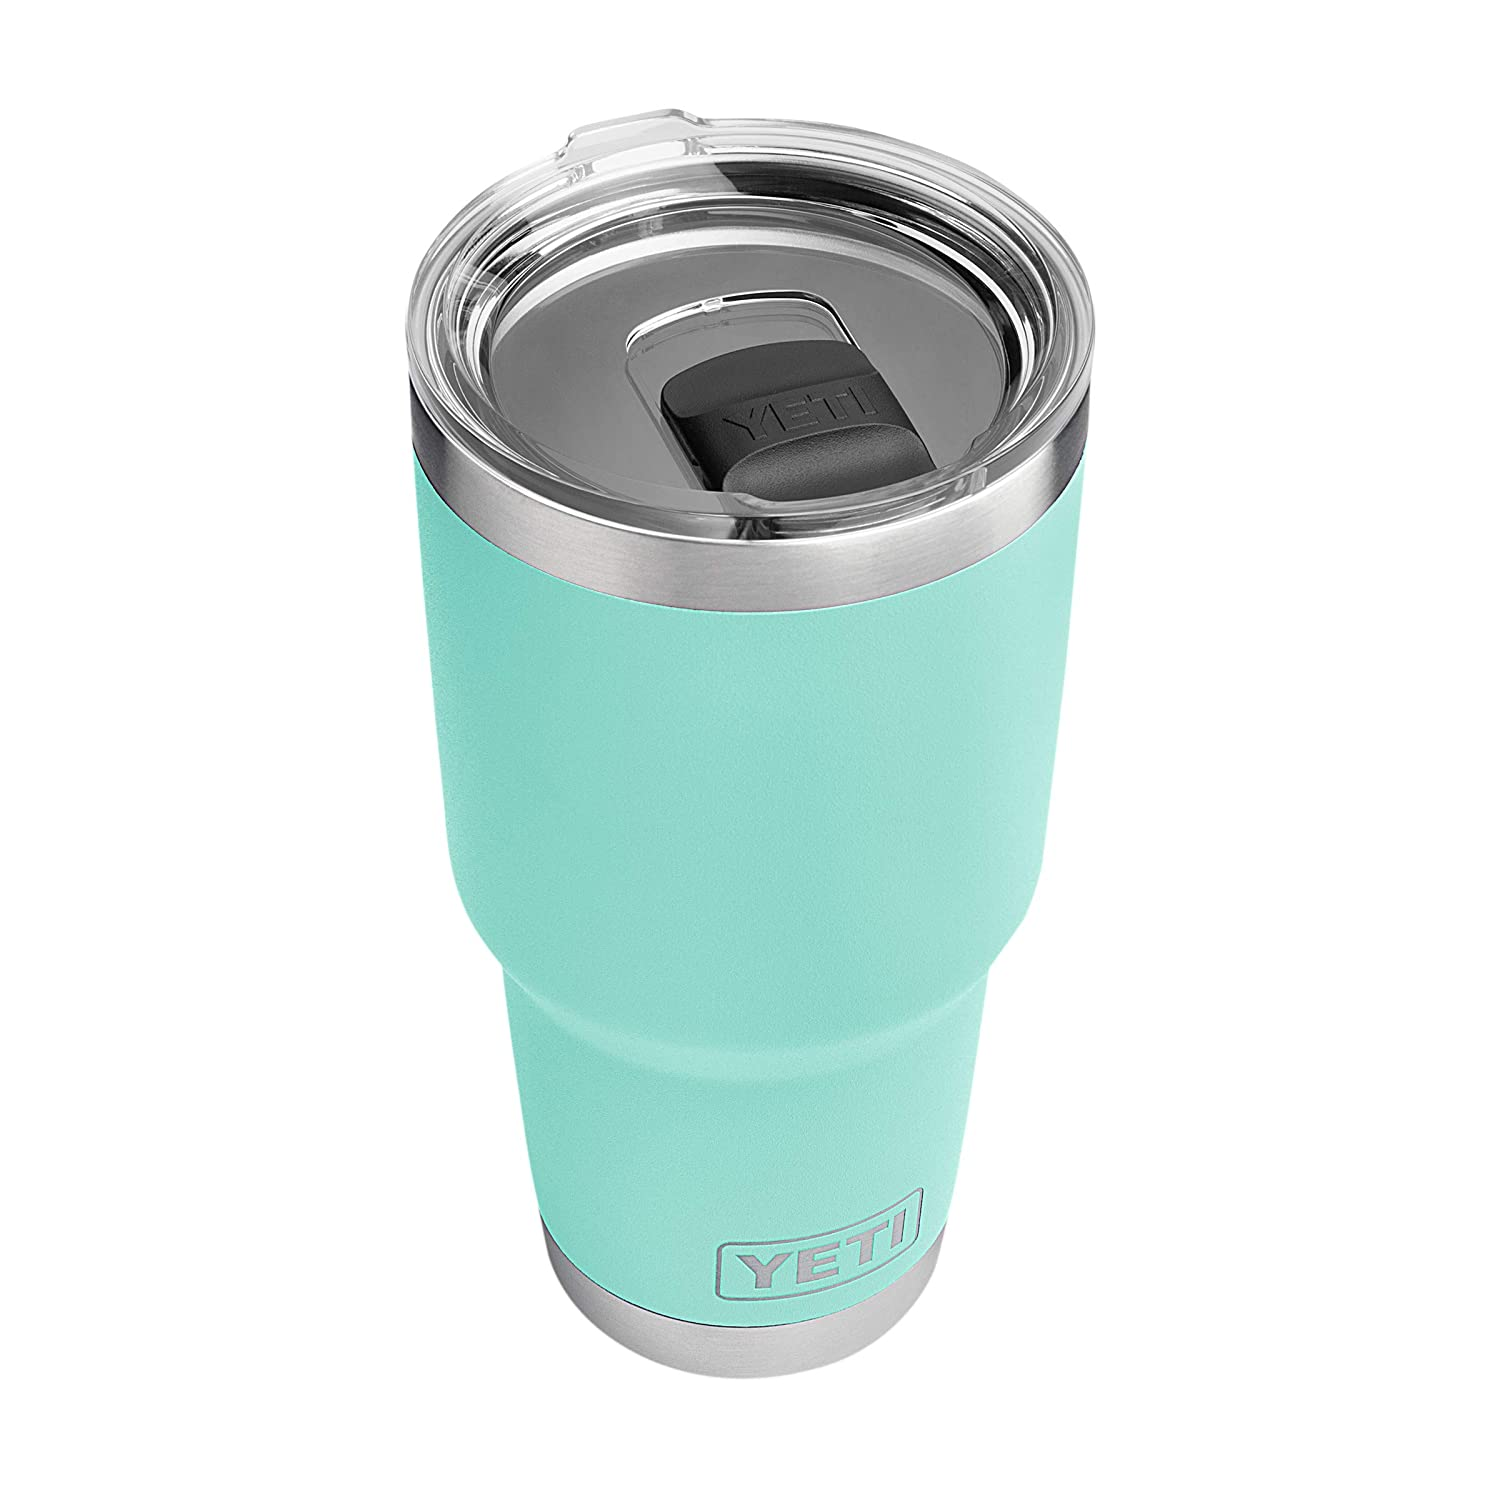 YETI Rambler 30 oz Stainless Steel Vacuum Insulated Tumbler w/MagSlider Lid